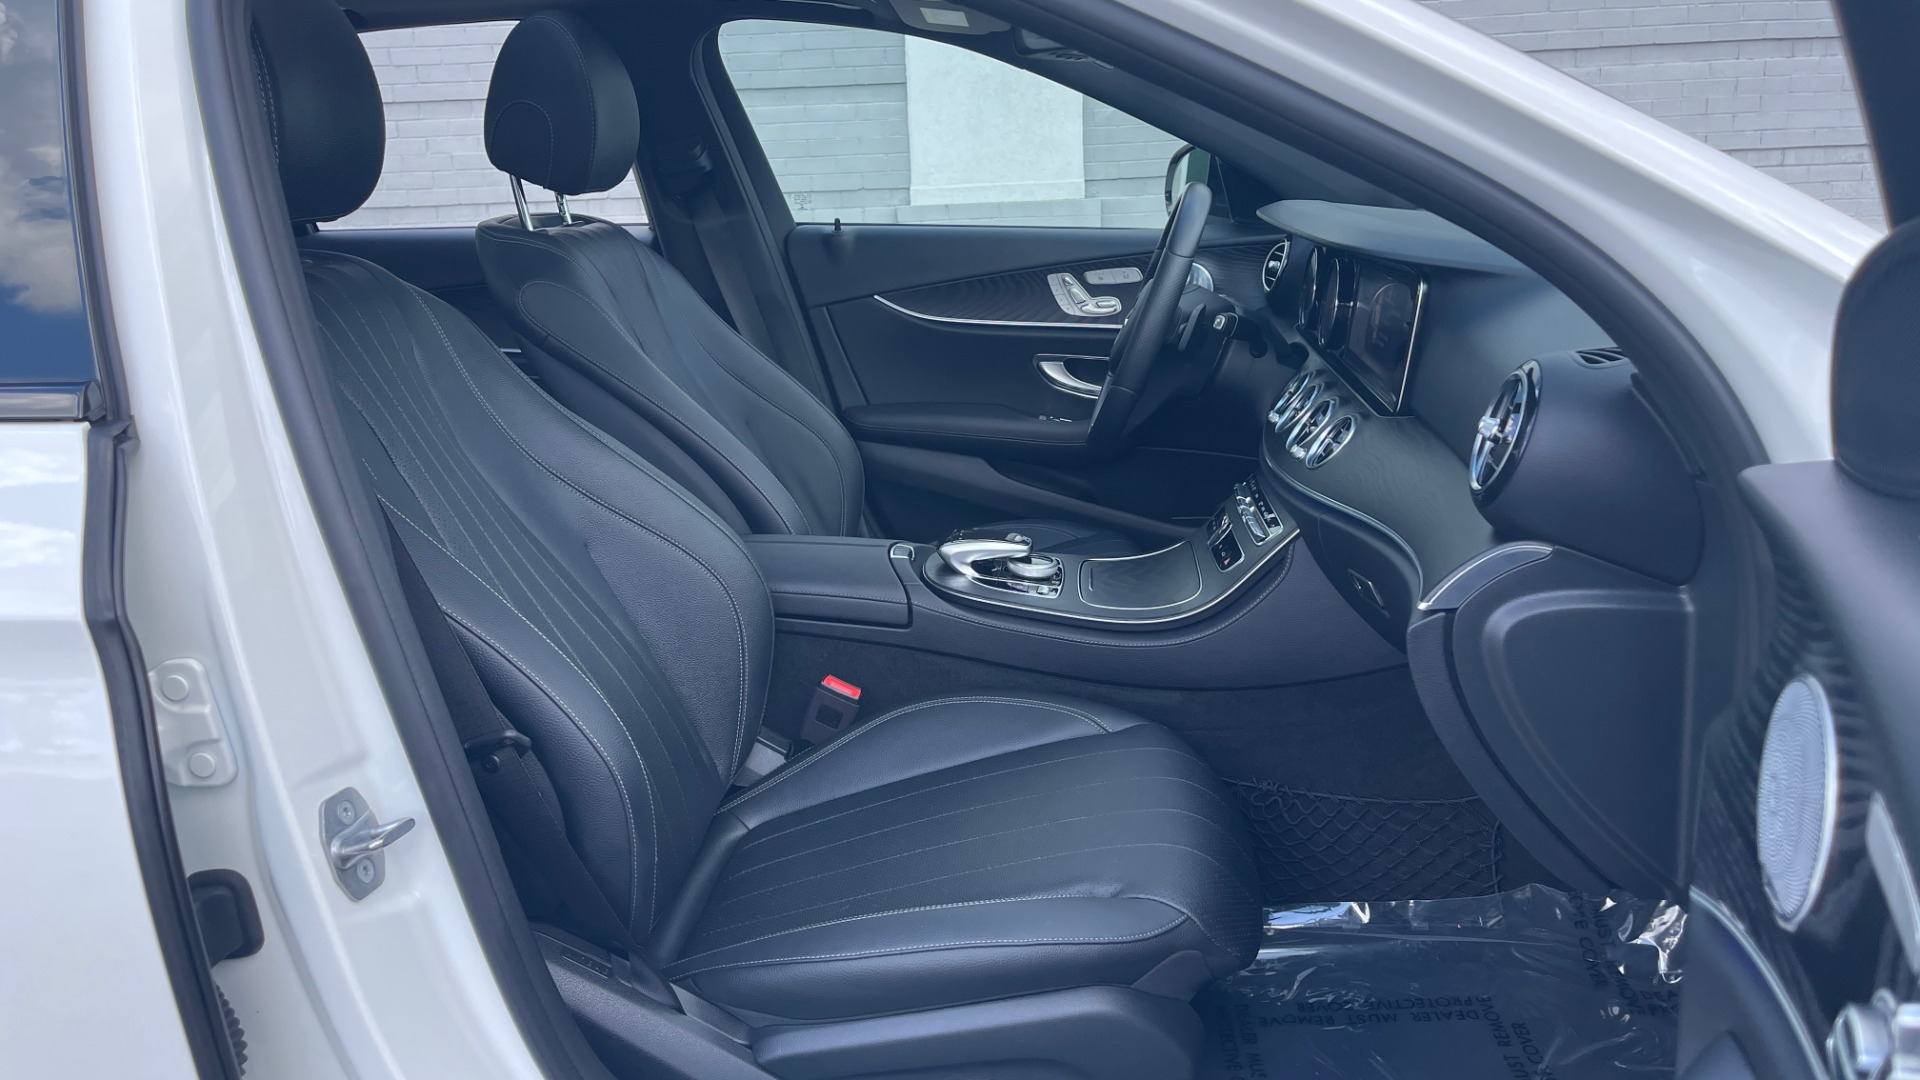 Used 2018 Mercedes-Benz E-CLASS E 300 PREMIUM / NIGHT PKG / PANO-ROOF / BURMESTER / REARVIEW for sale $42,399 at Formula Imports in Charlotte NC 28227 71